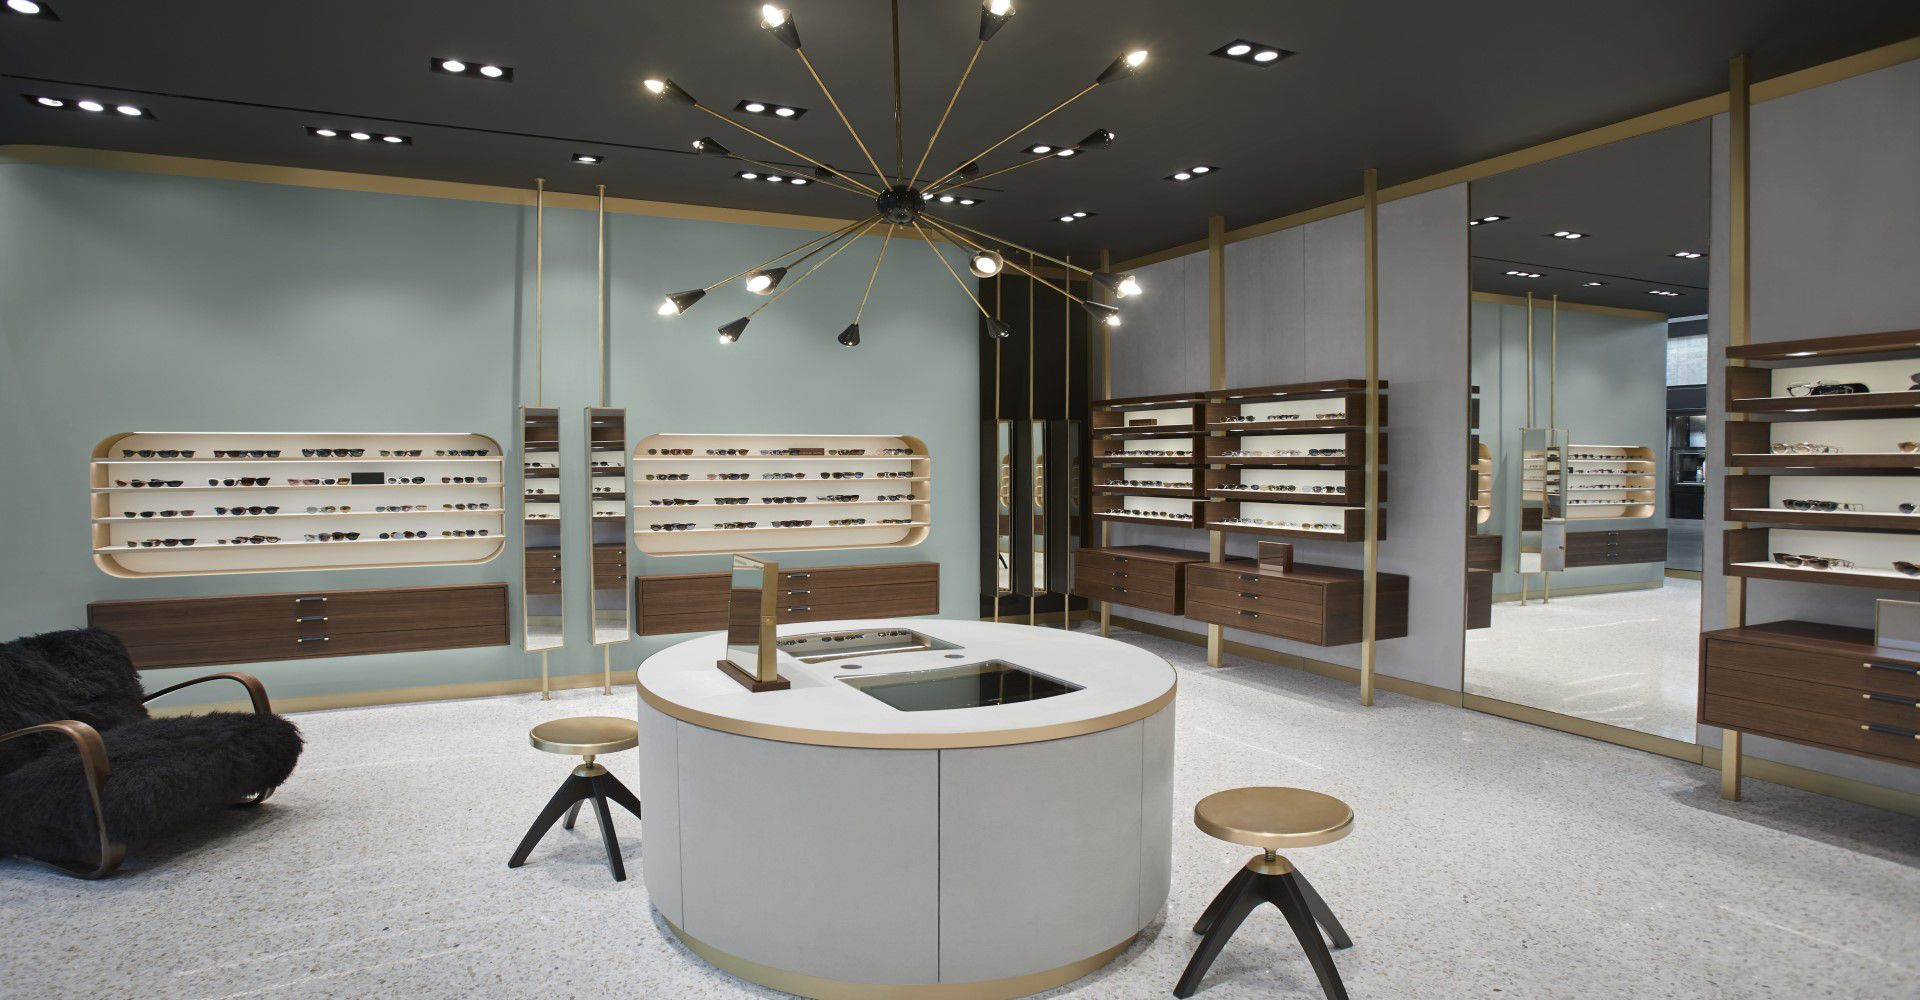 Oliver Peoples Yorkdale shopping